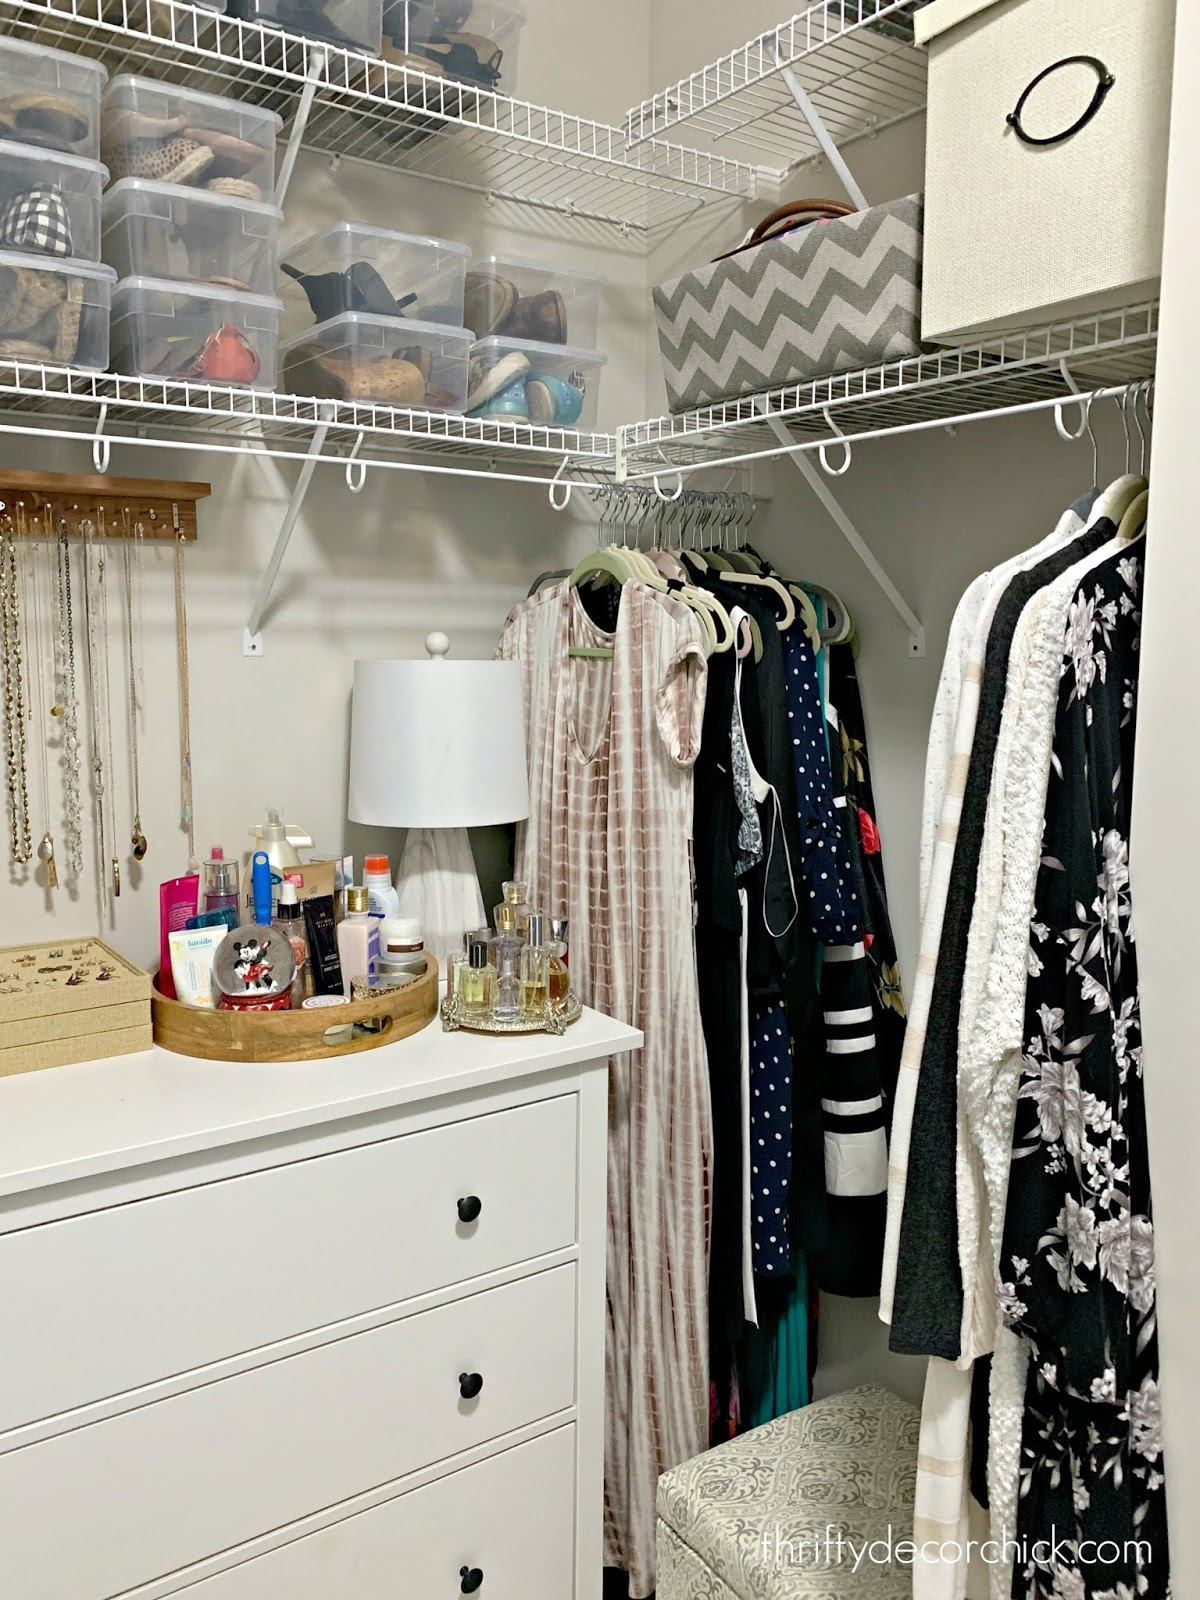 Dresser in closet with jewelry organization